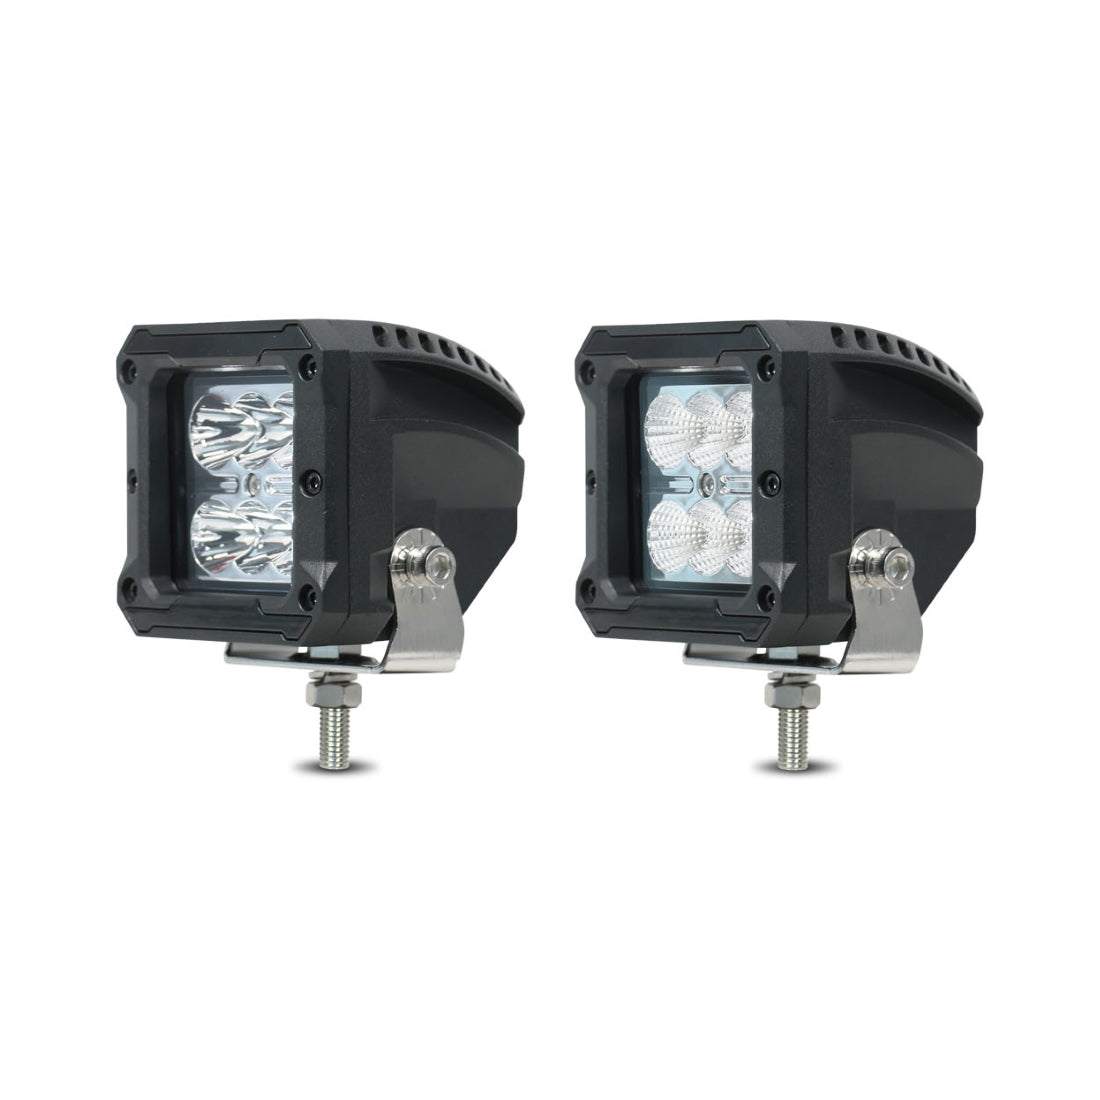 Roadvision RWL34/36 Series LED Work Light 10-30V Square